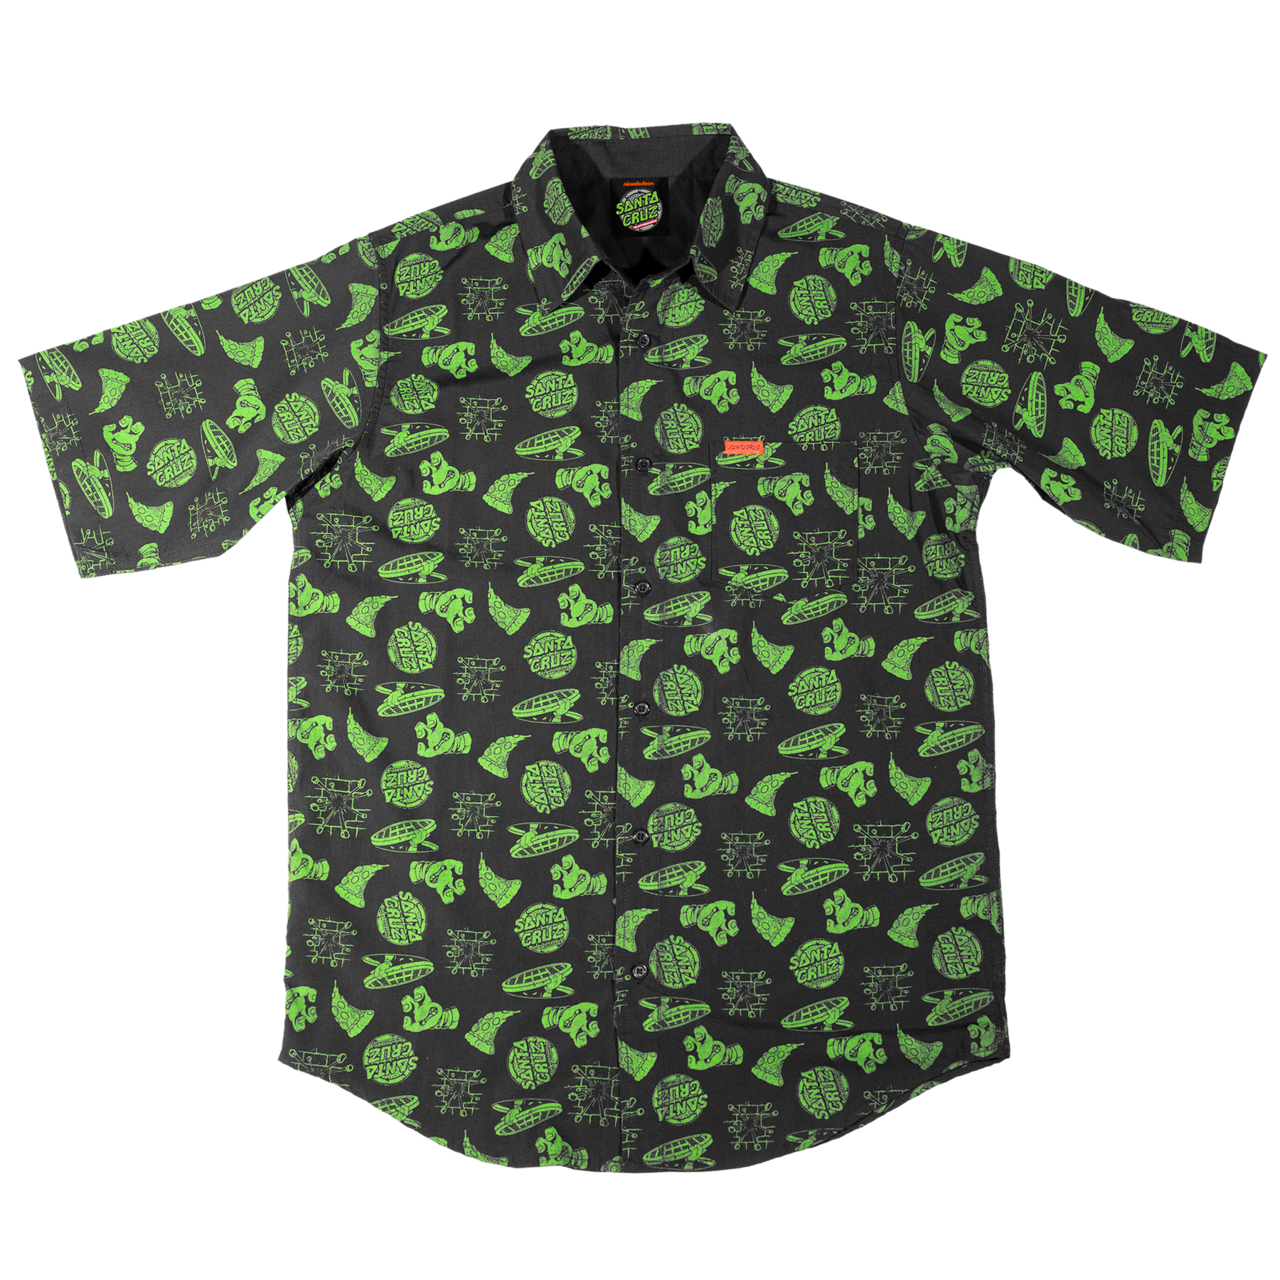 Santa Cruz X TMNT Cowabunga s/s button up shirt black